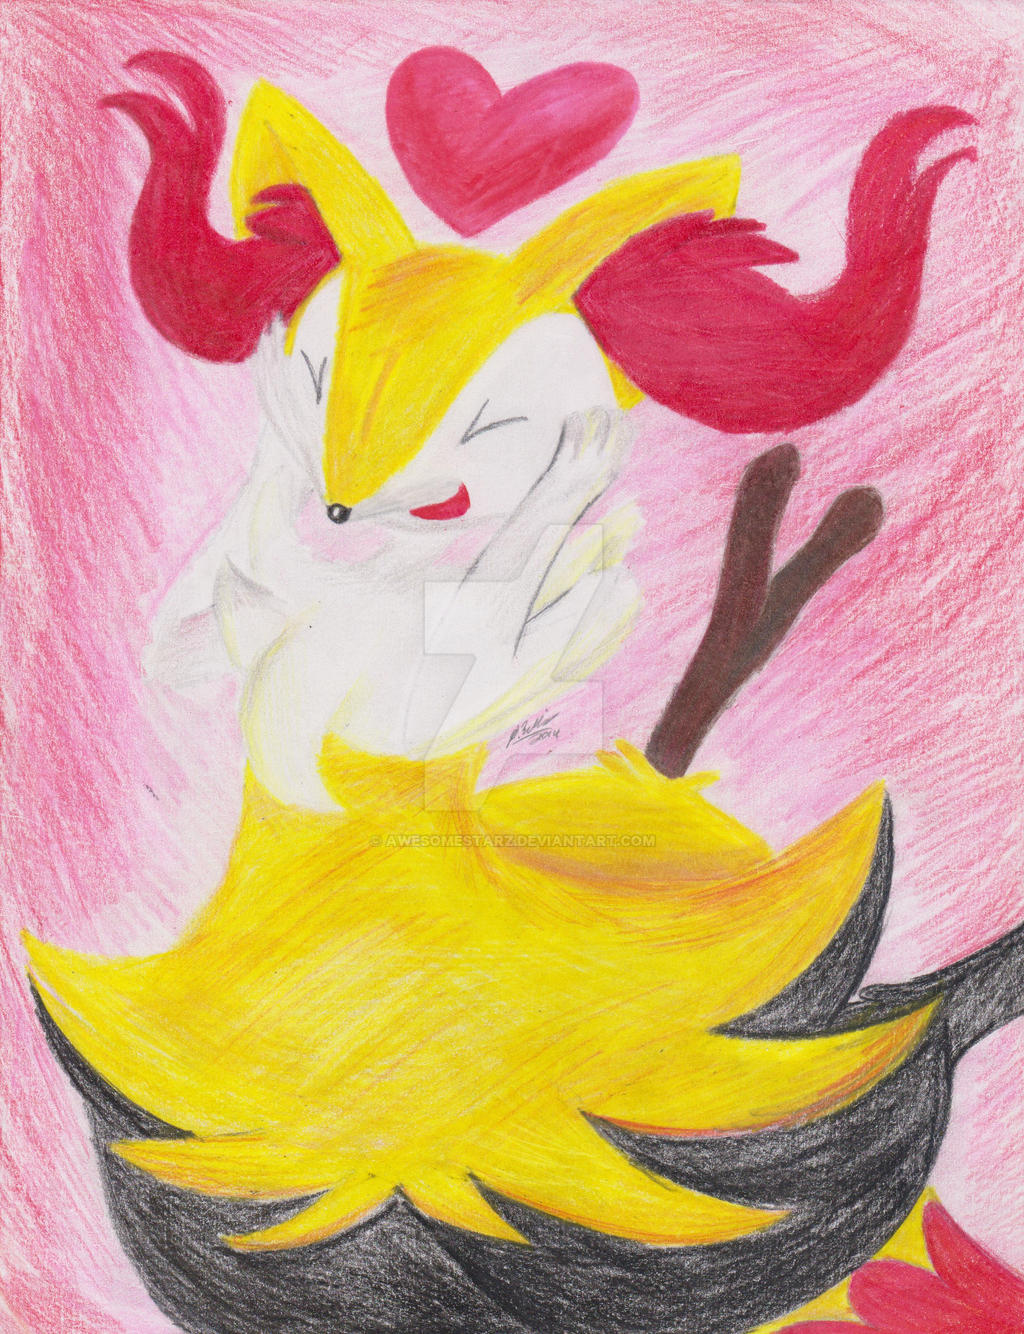 #654 Braixen (Tairenar) by awesomestarz